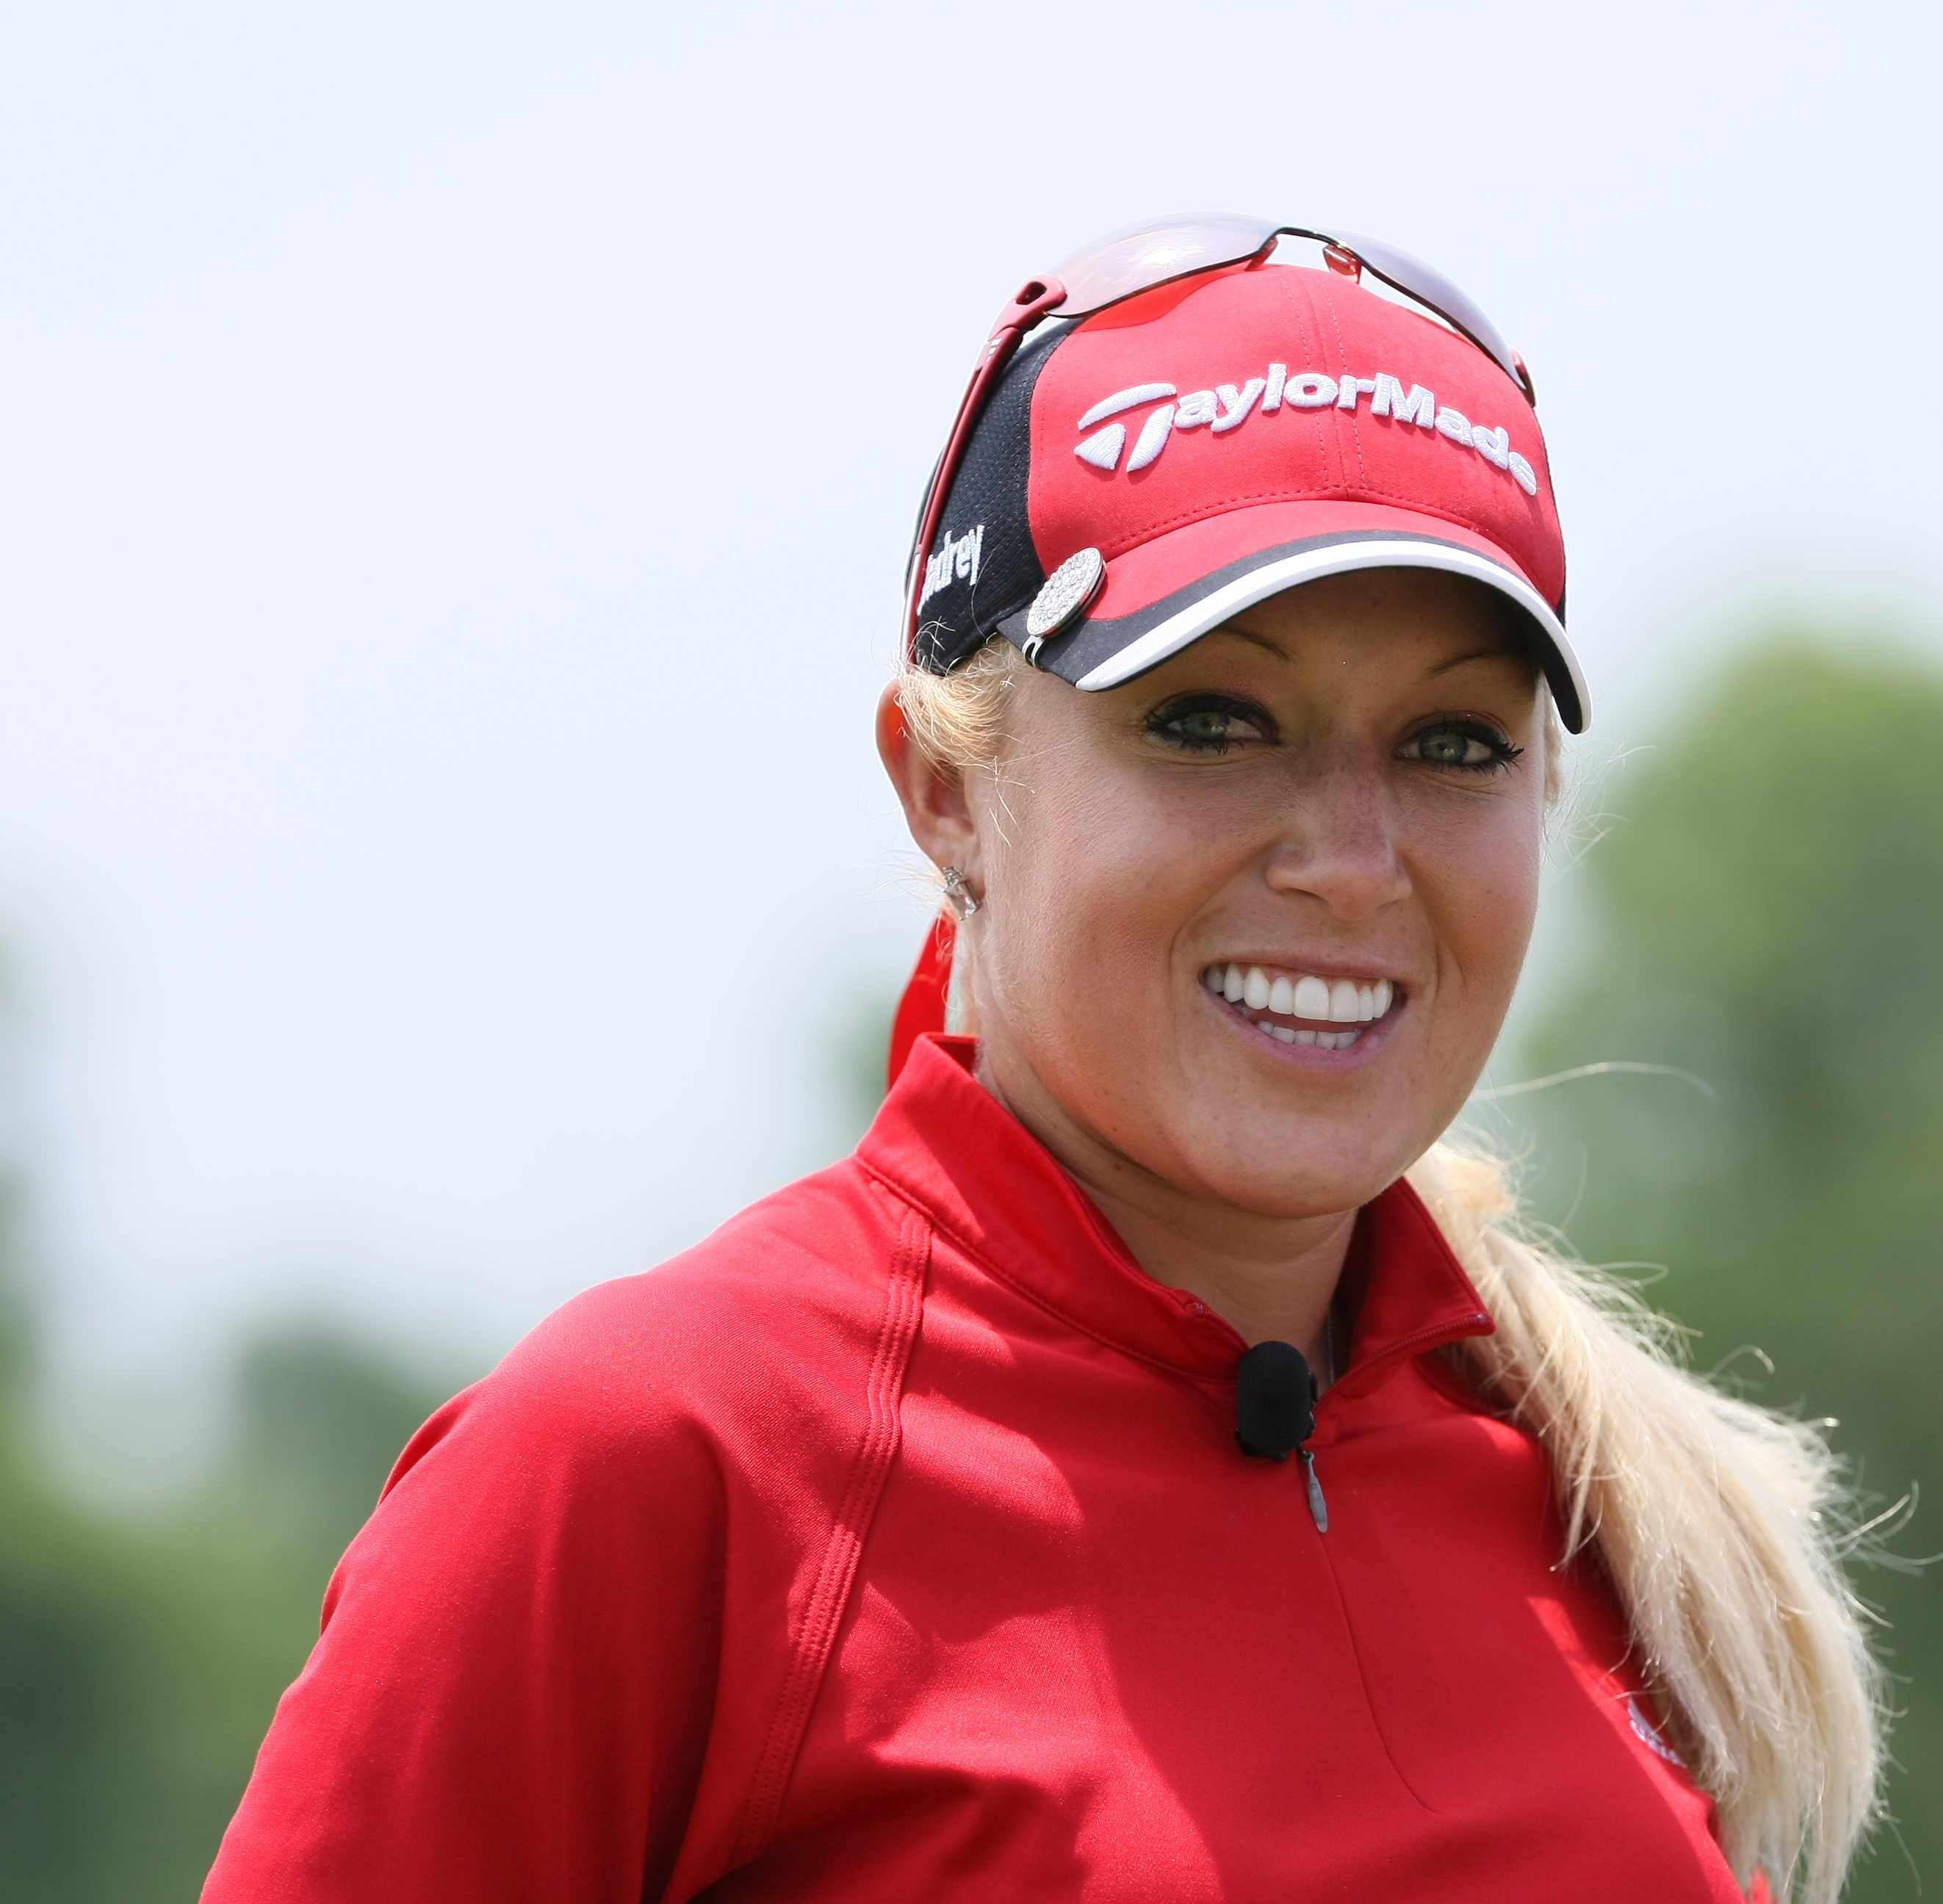 The 34-year old daughter of father (?) and mother(?), 175 cm tall Natalie Gulbis in 2017 photo